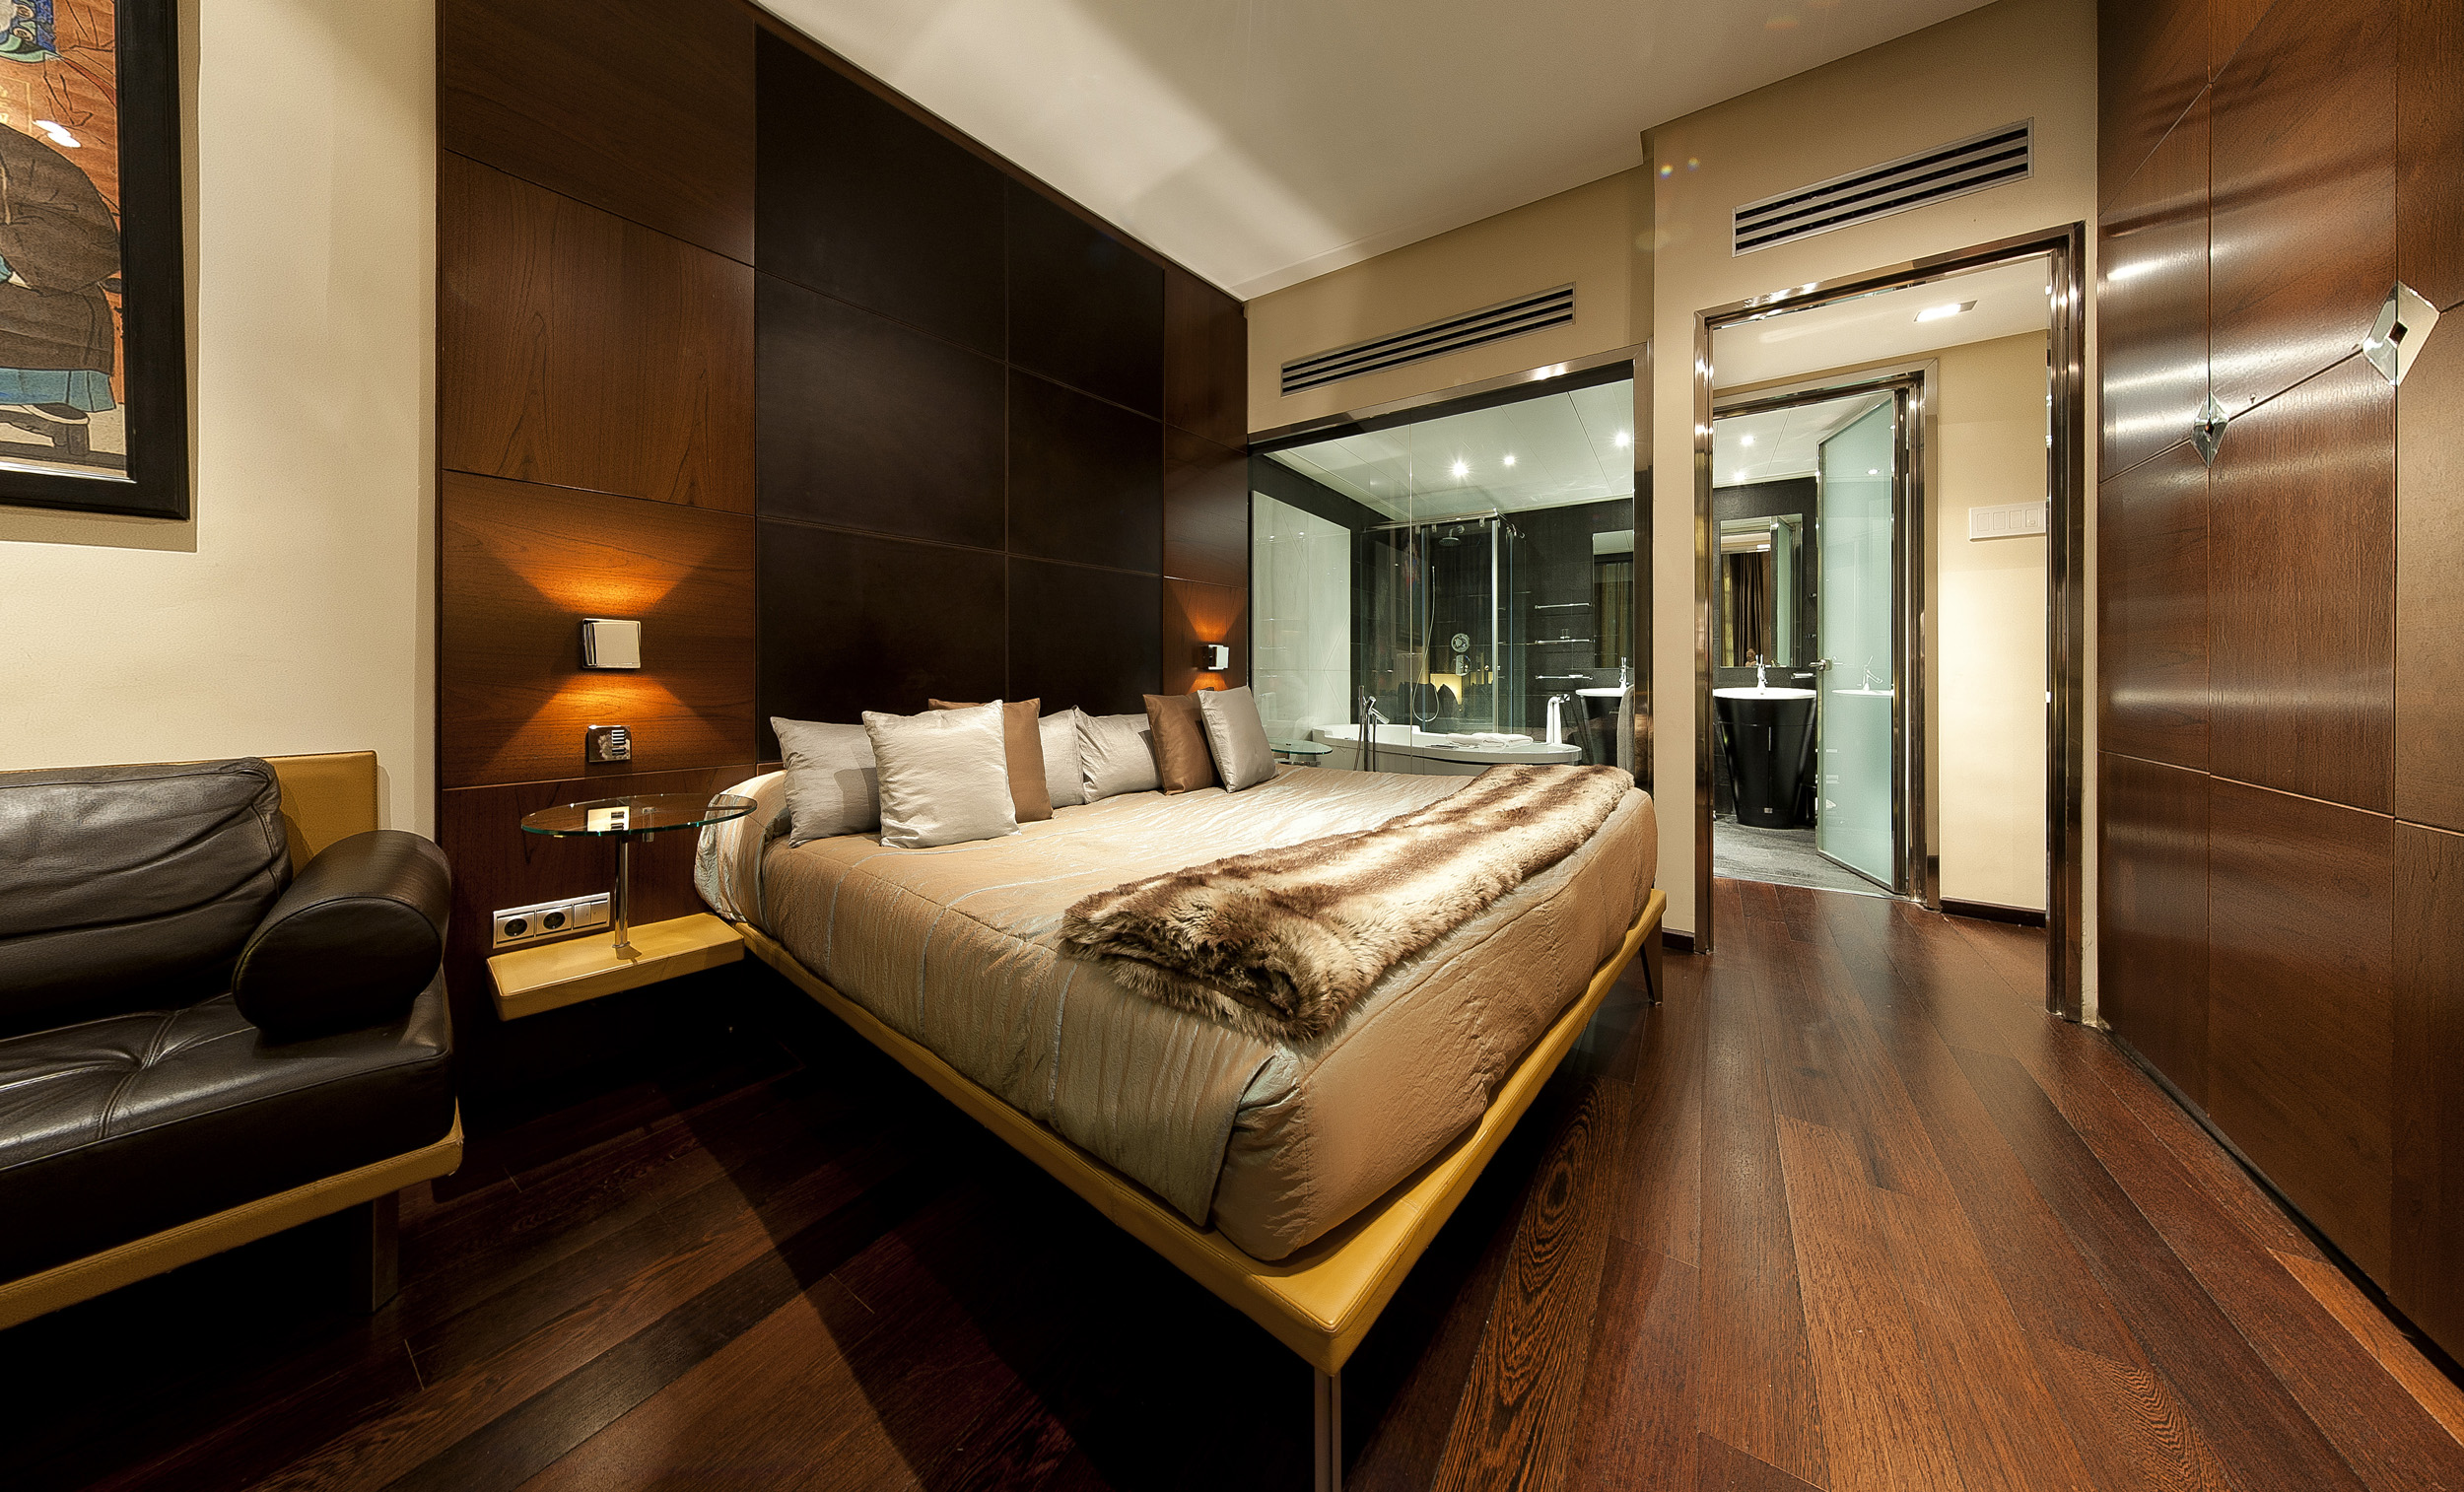 Best luxury hotels in madrid top 10 ealuxe com for Design hotel urban madrid